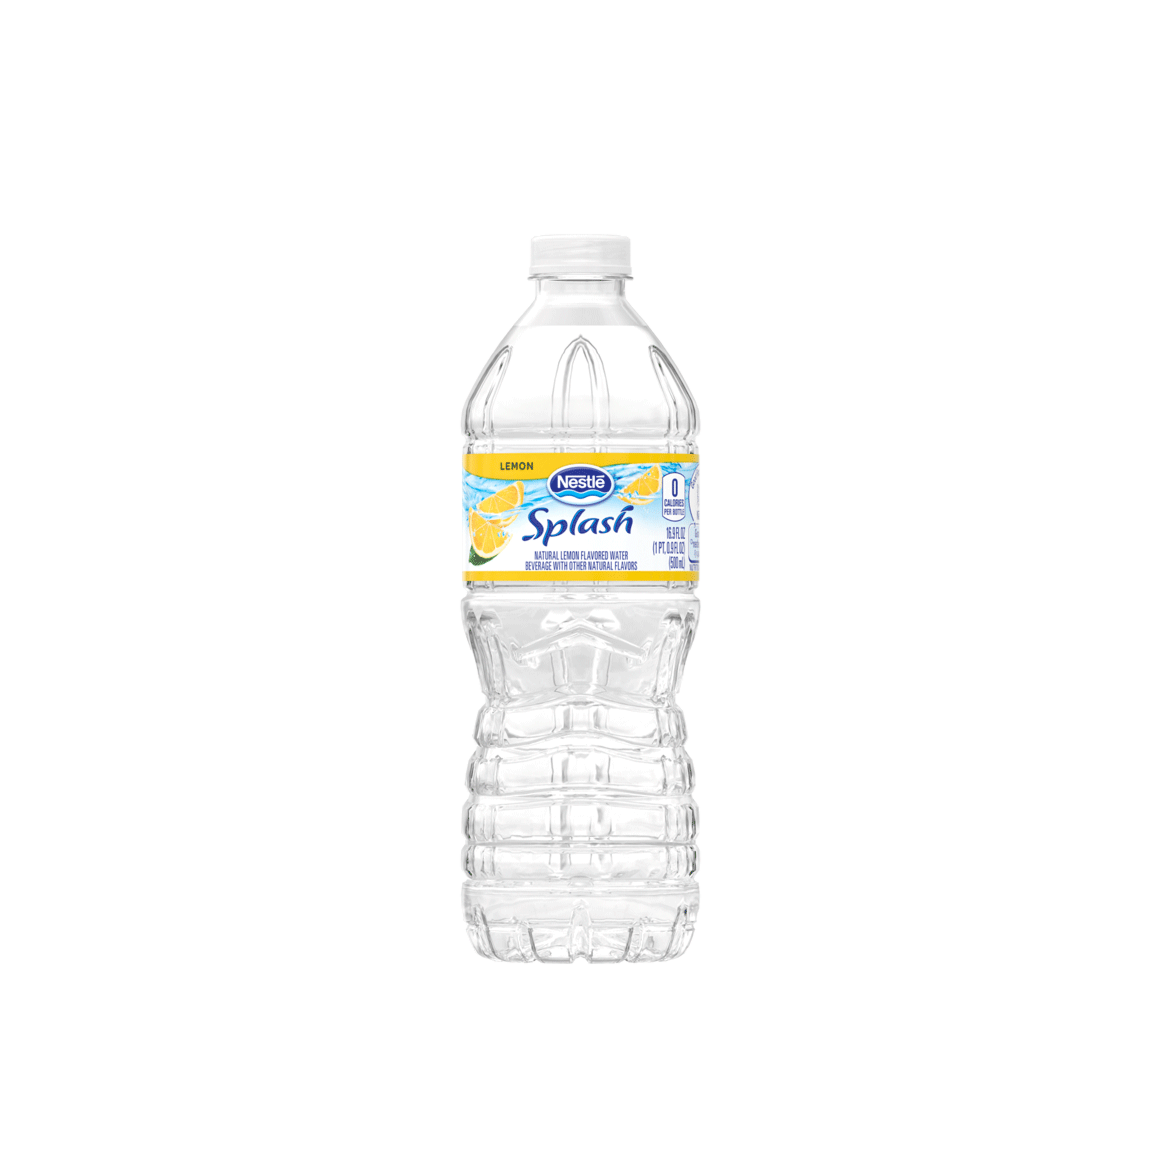 Nestlé® Splash Lemon Flavored Water Image2